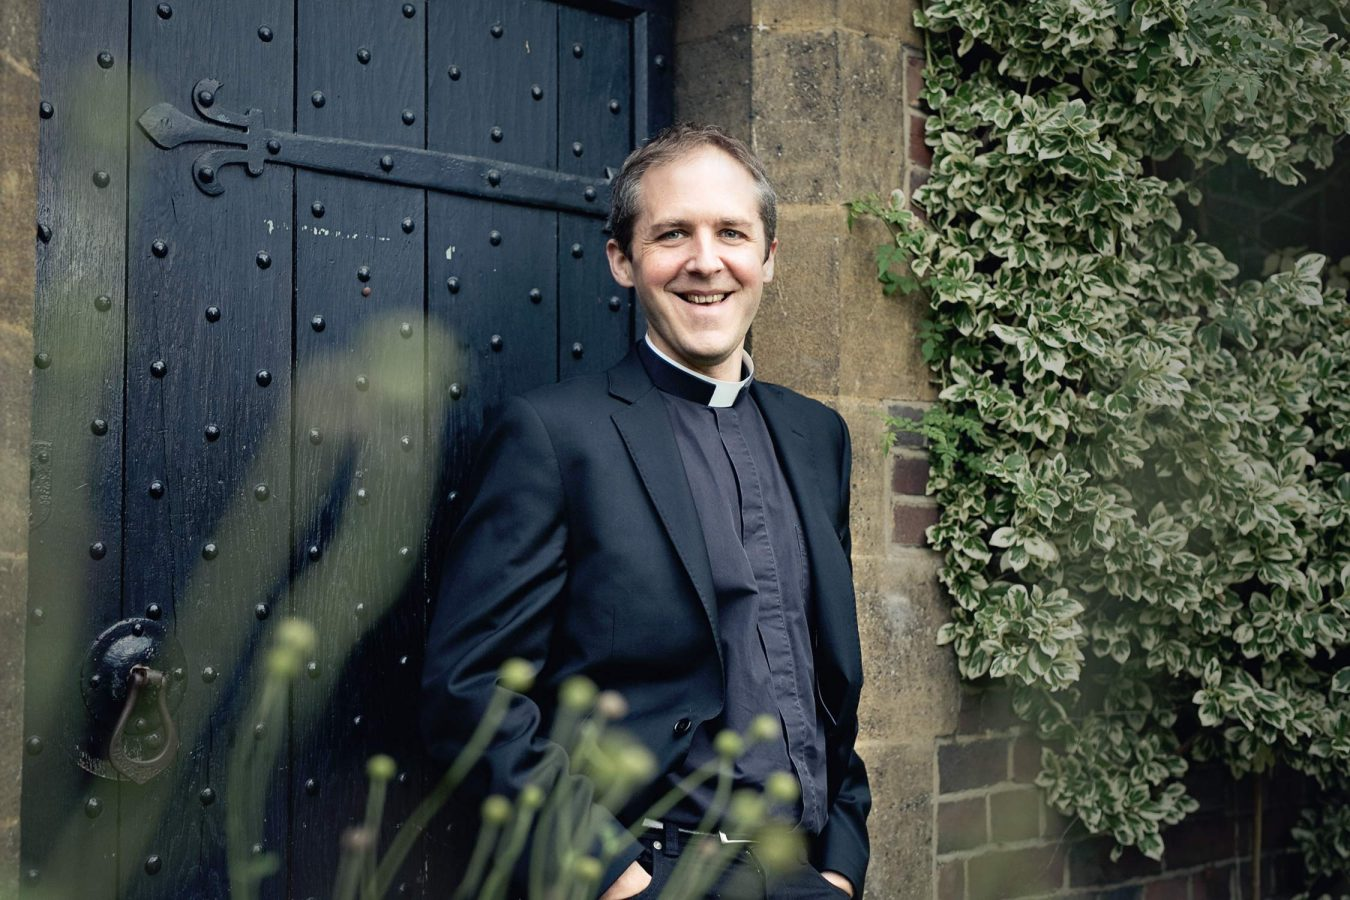 location--clergy-ordained-portrait-westcott-college-cambridge